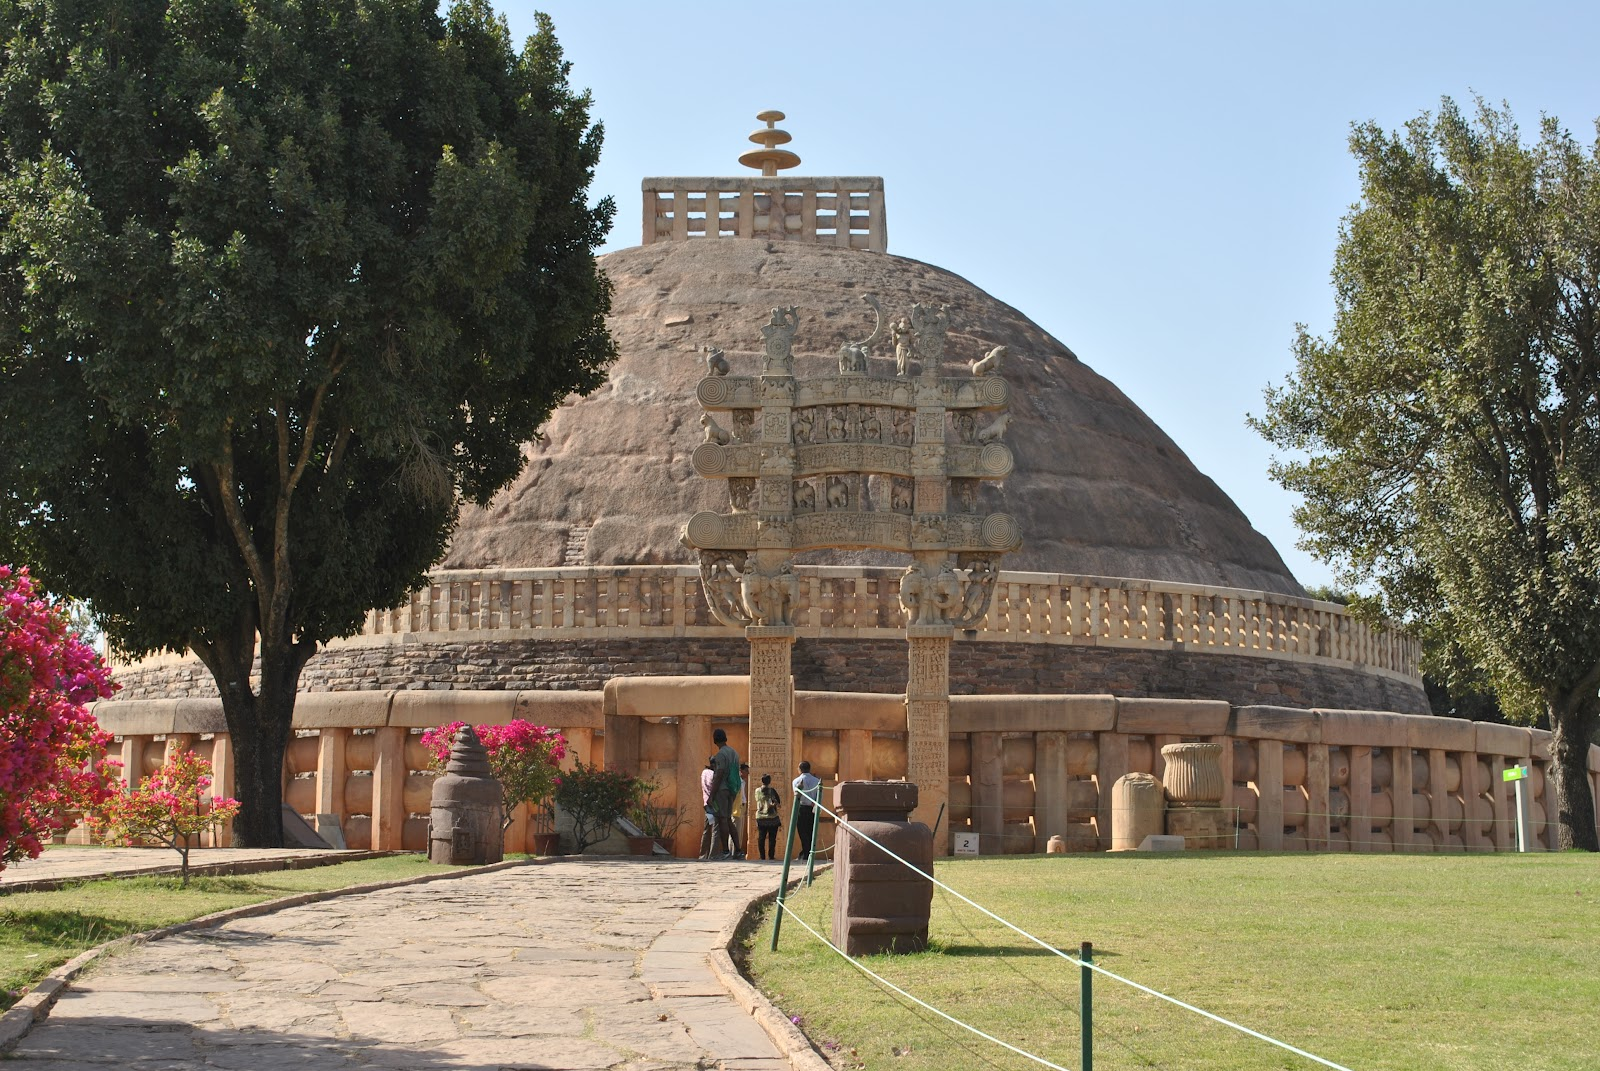 The Town of Sanchi